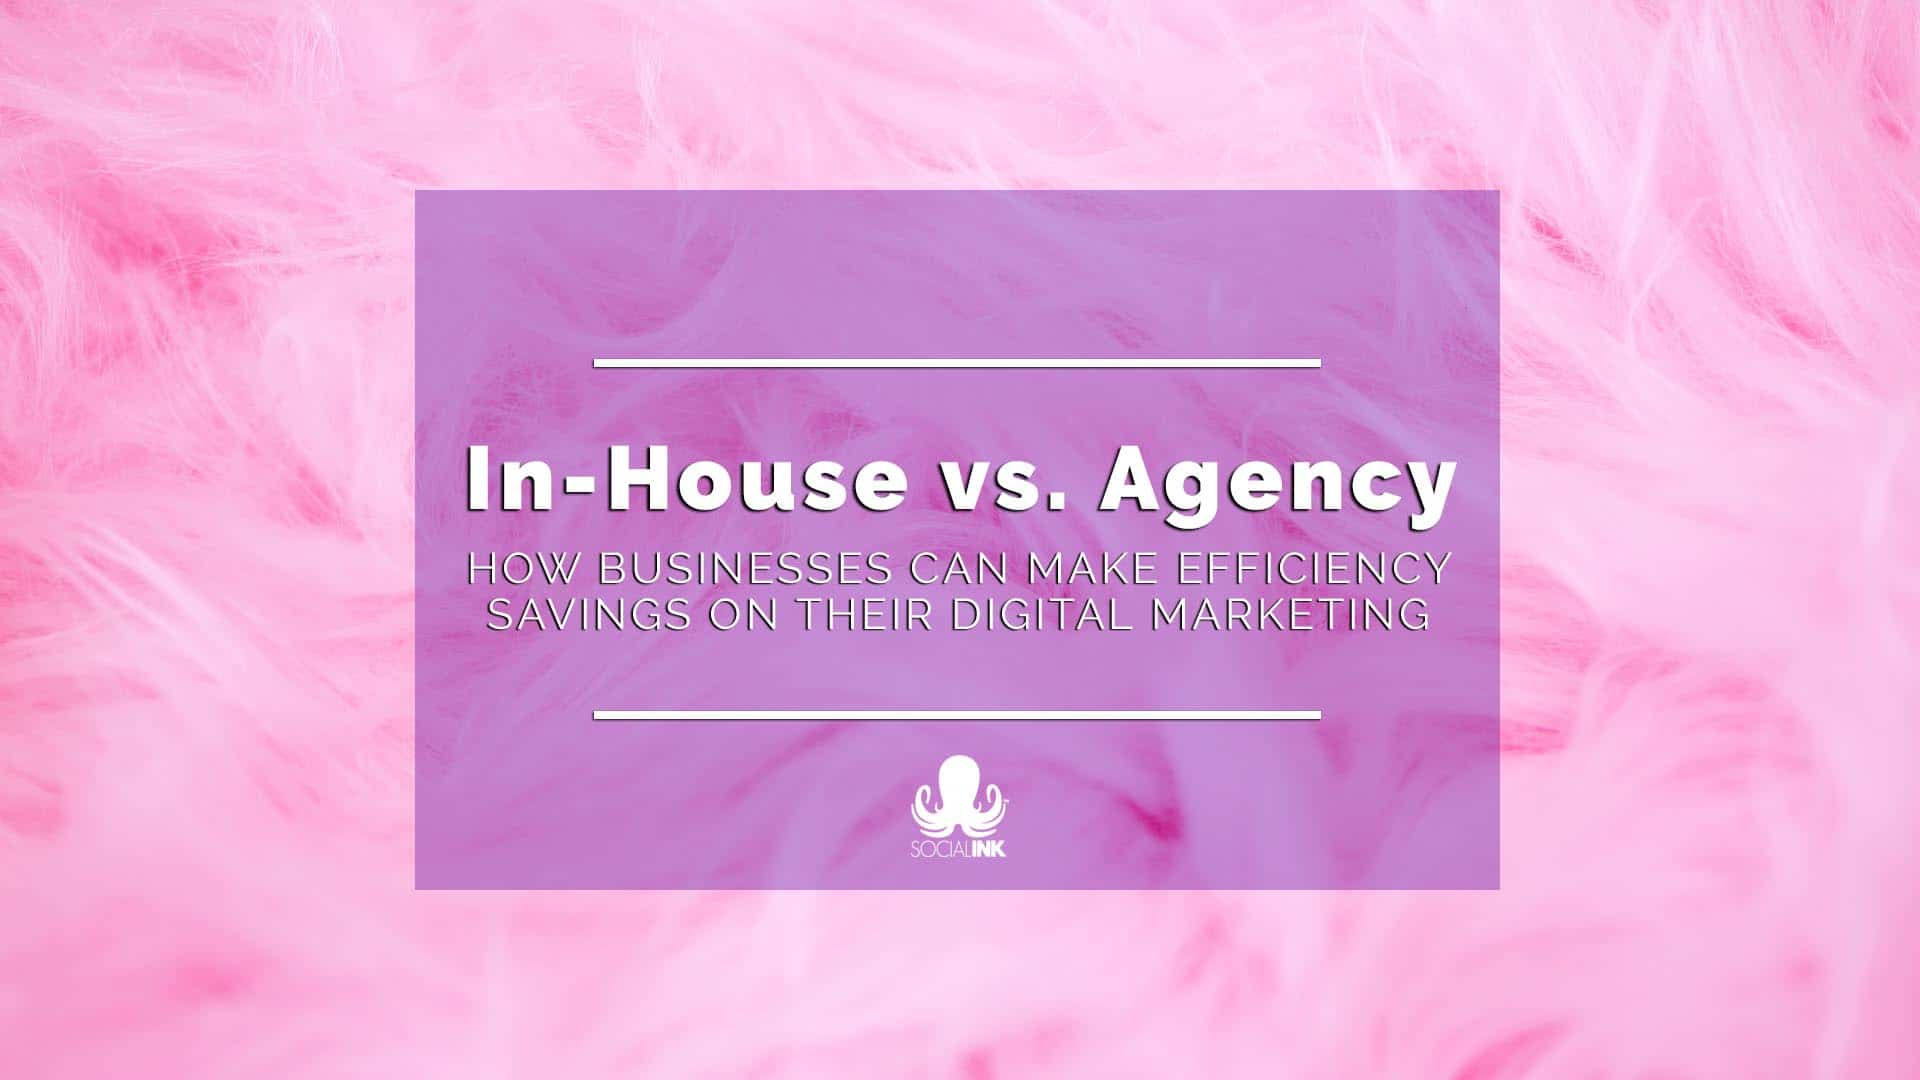 In-House vs. Agency: How Businesses Can Make Efficiency Savings on Their Digital Marketing